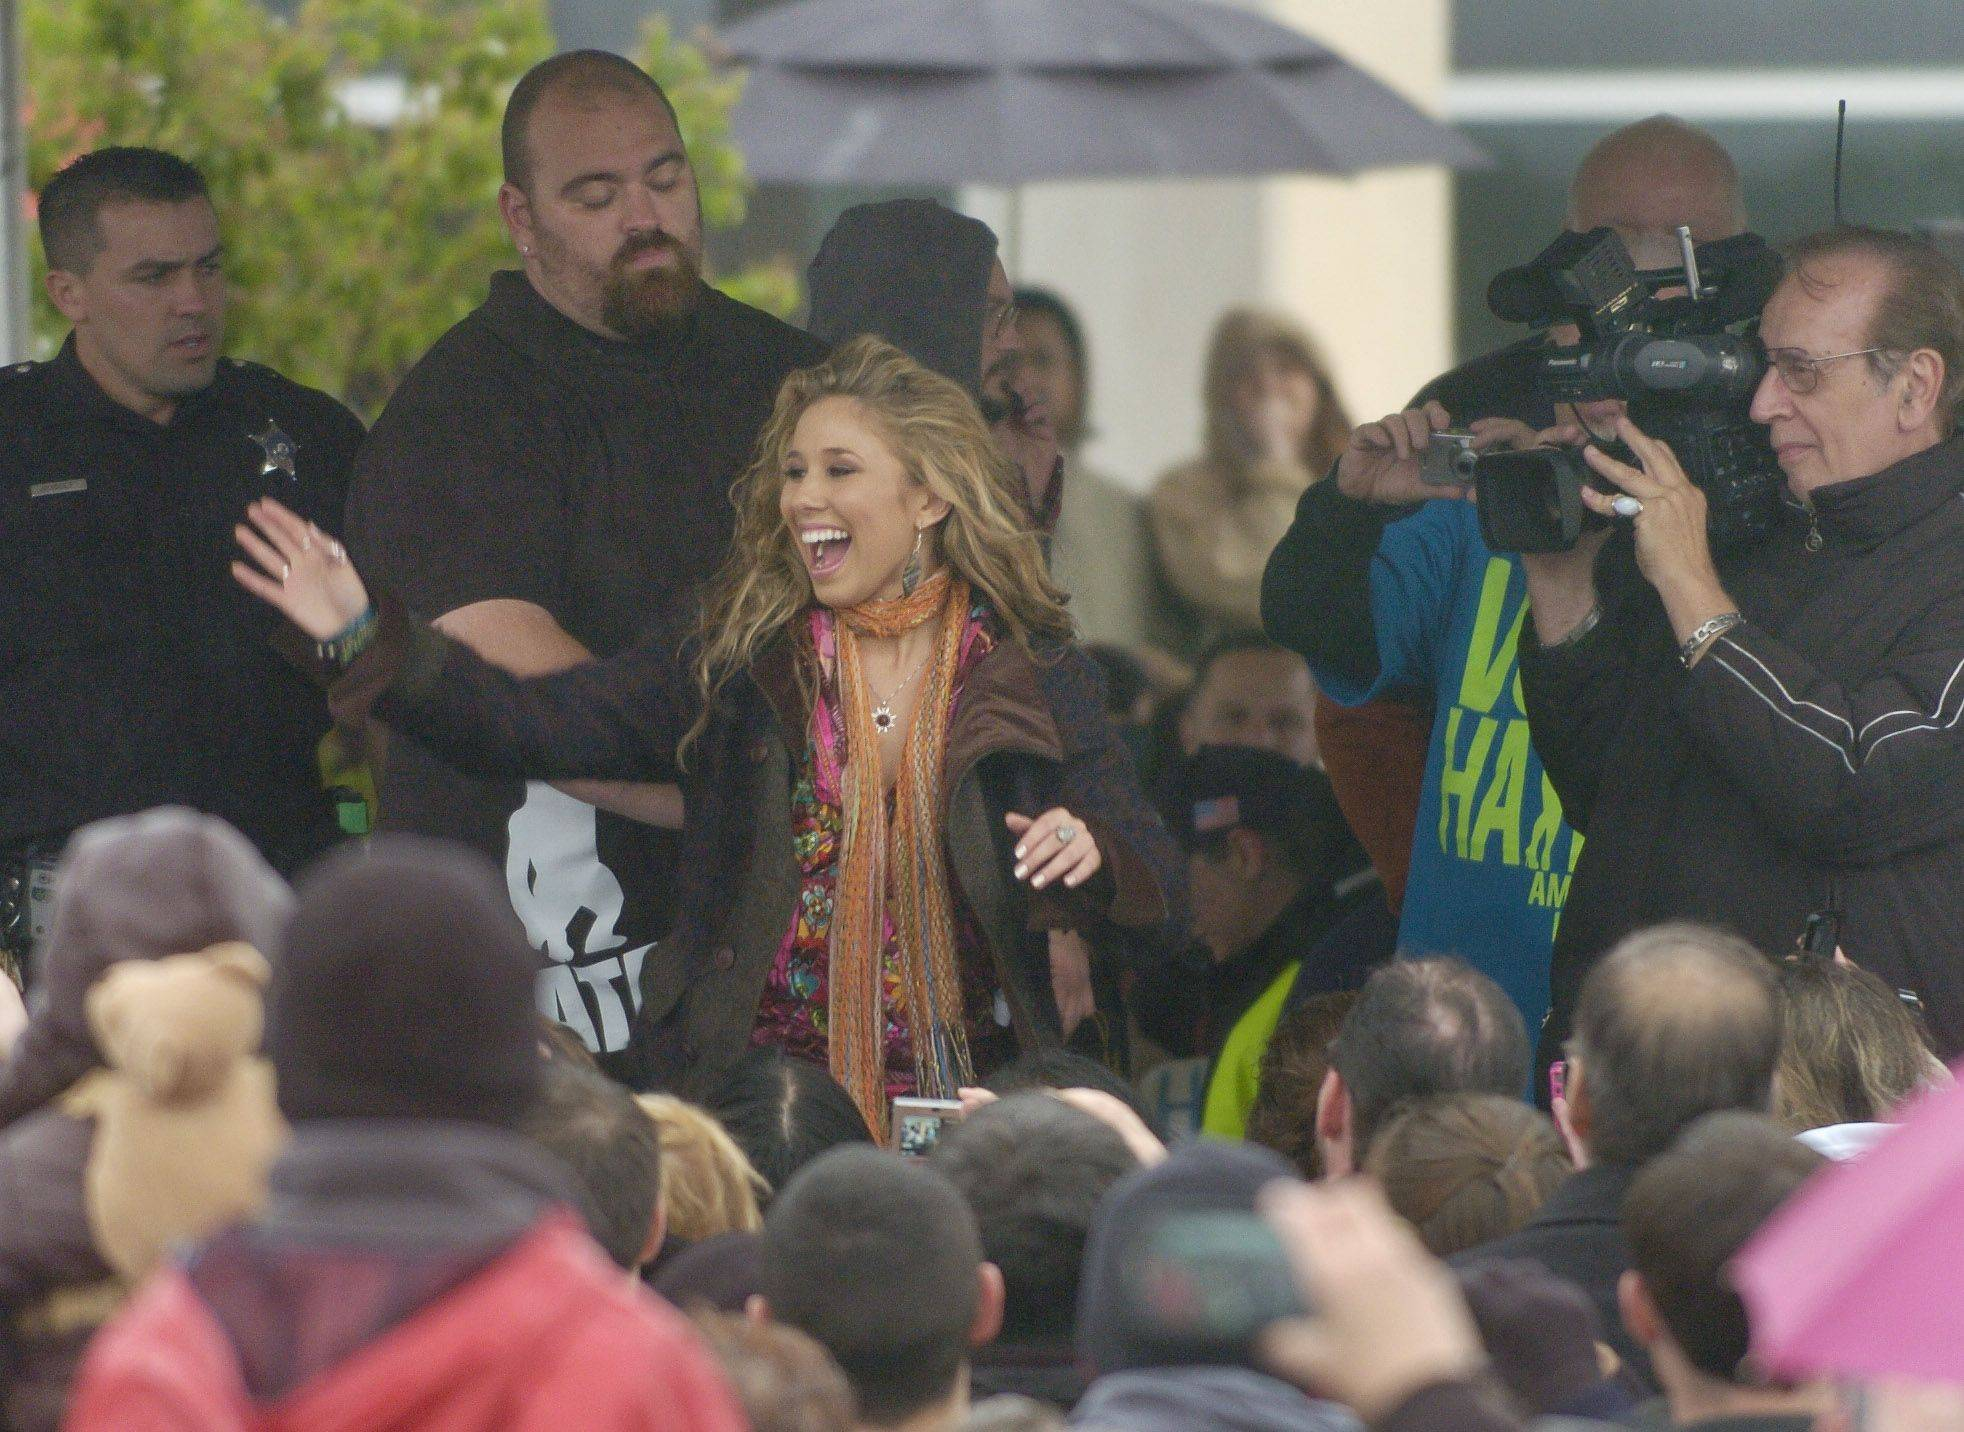 American Idol finalist Haley Reinhart greets fans during a gathering at the Wheeling Village Hall Saturday.